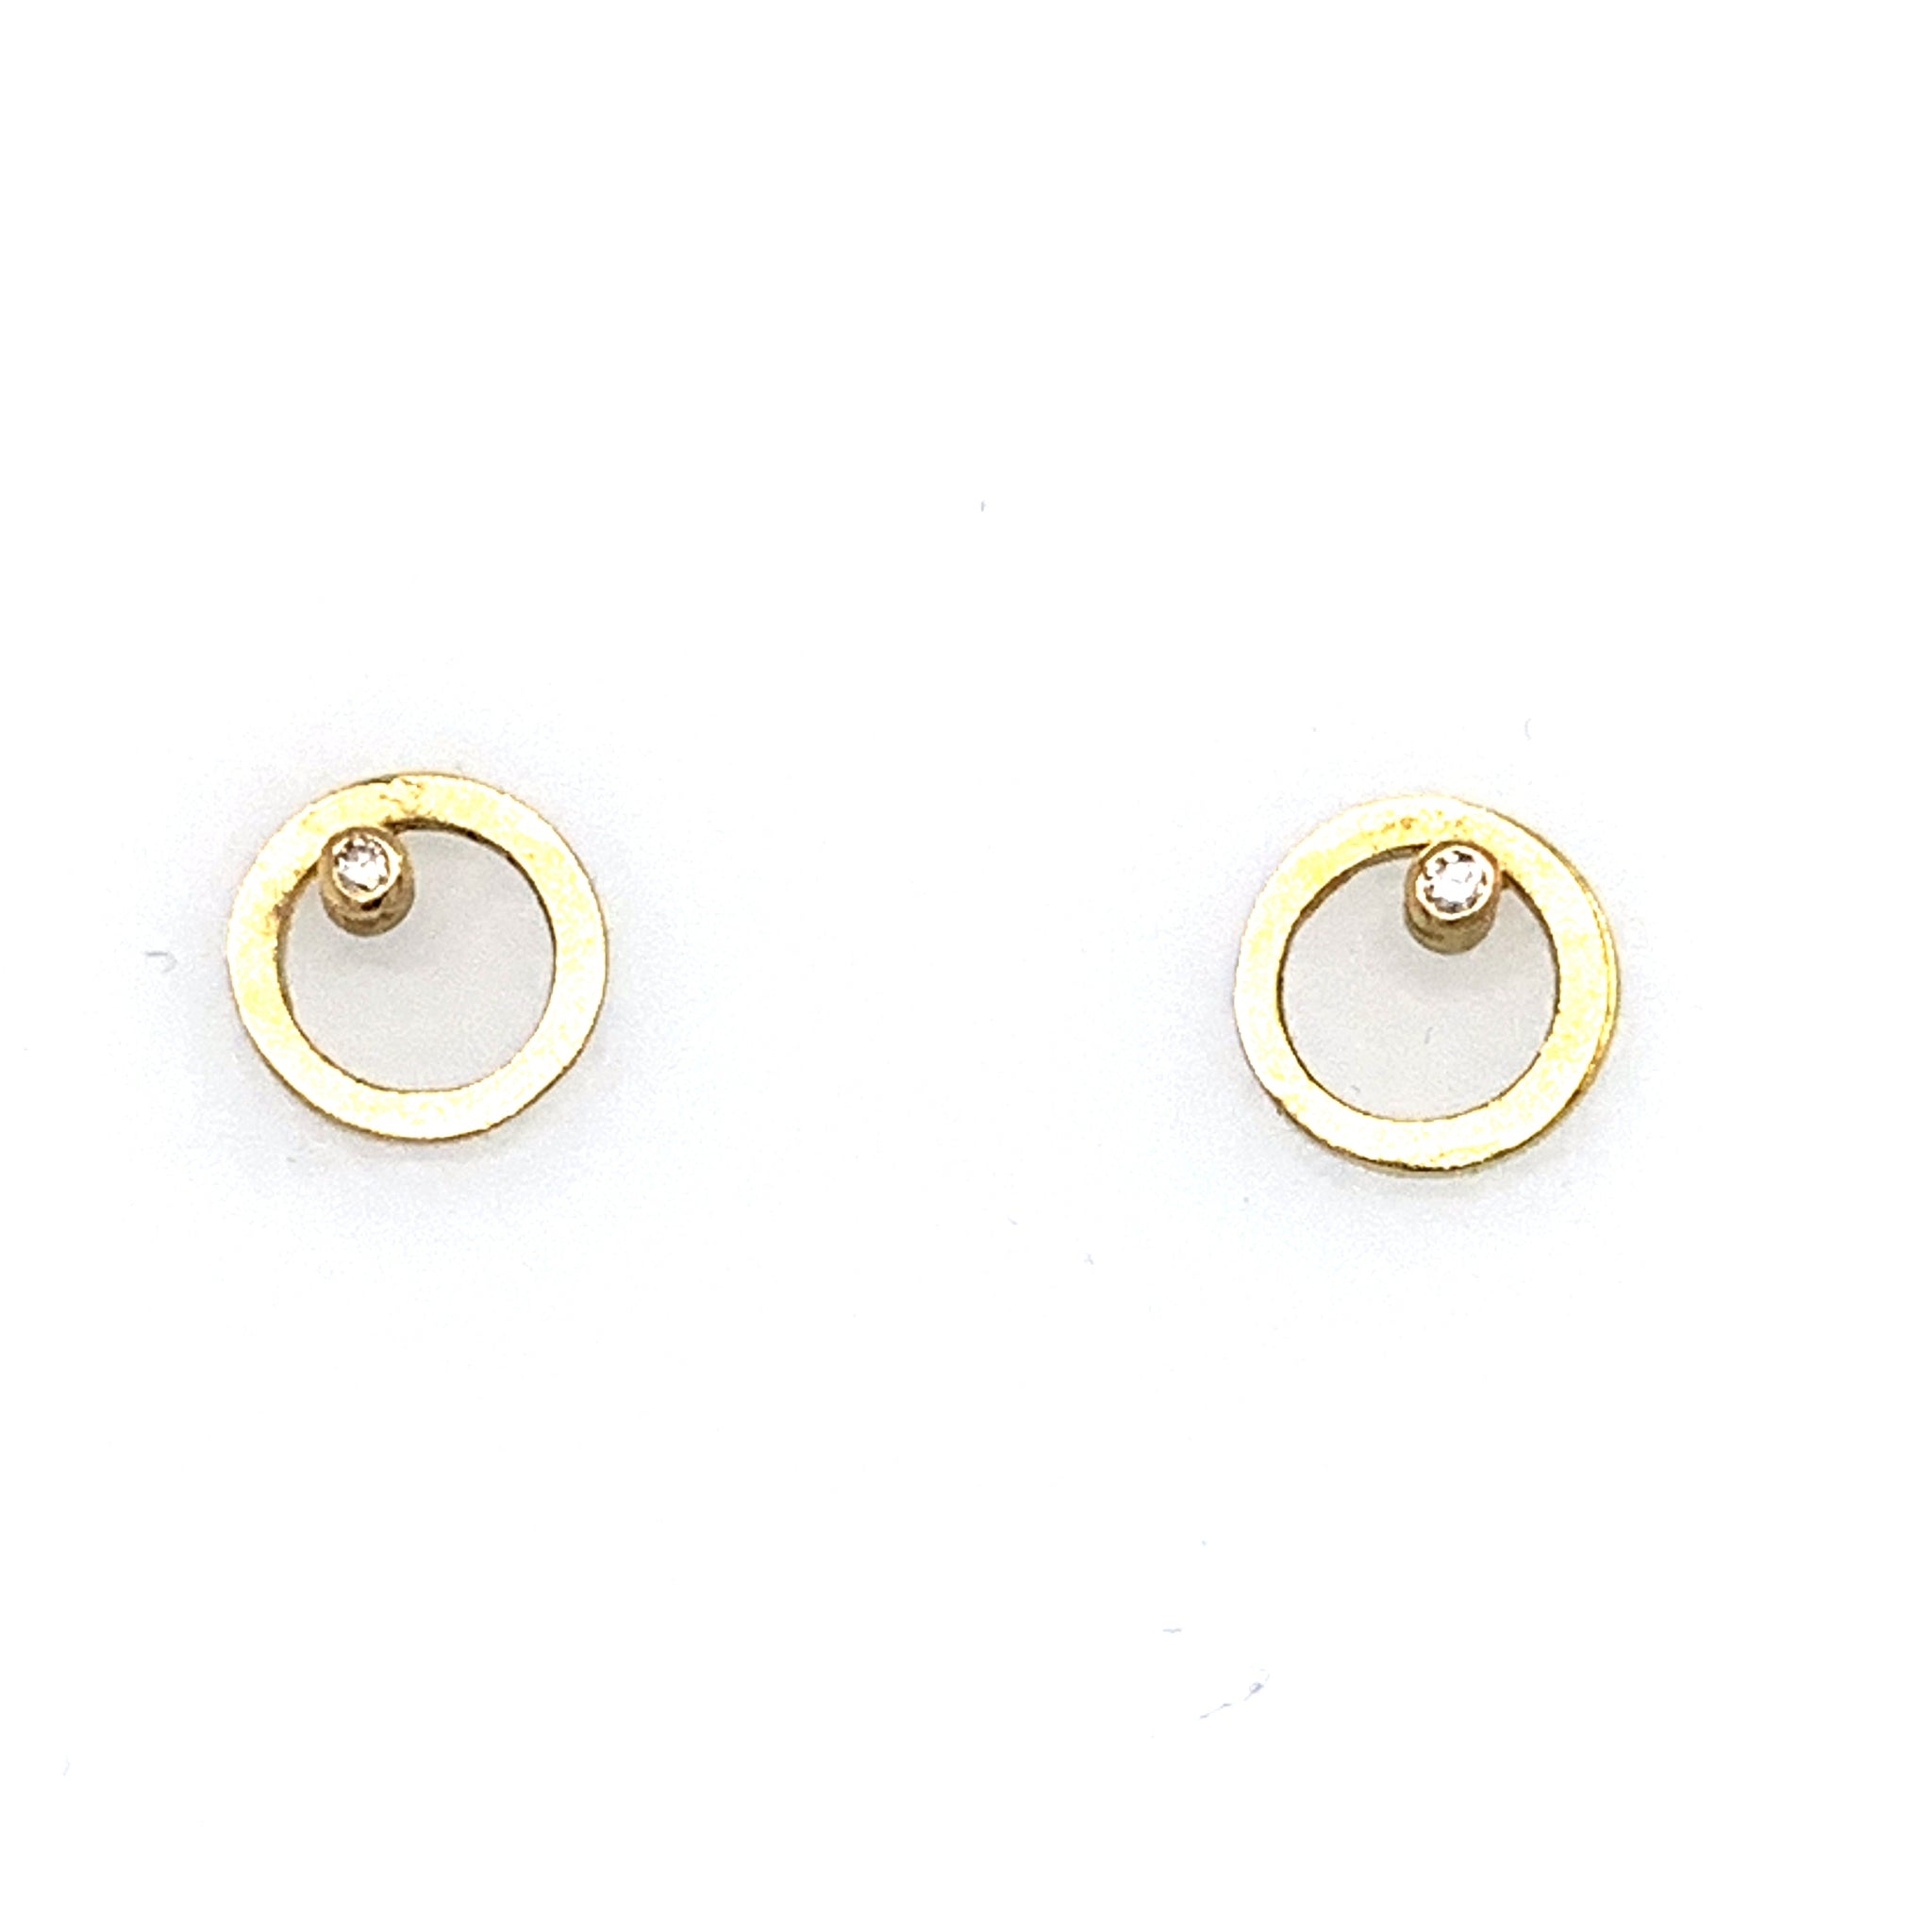 Ohrstecker Gold 750 Ø 8mm Brillanten zus. 0.03 ct TW/SI - O204